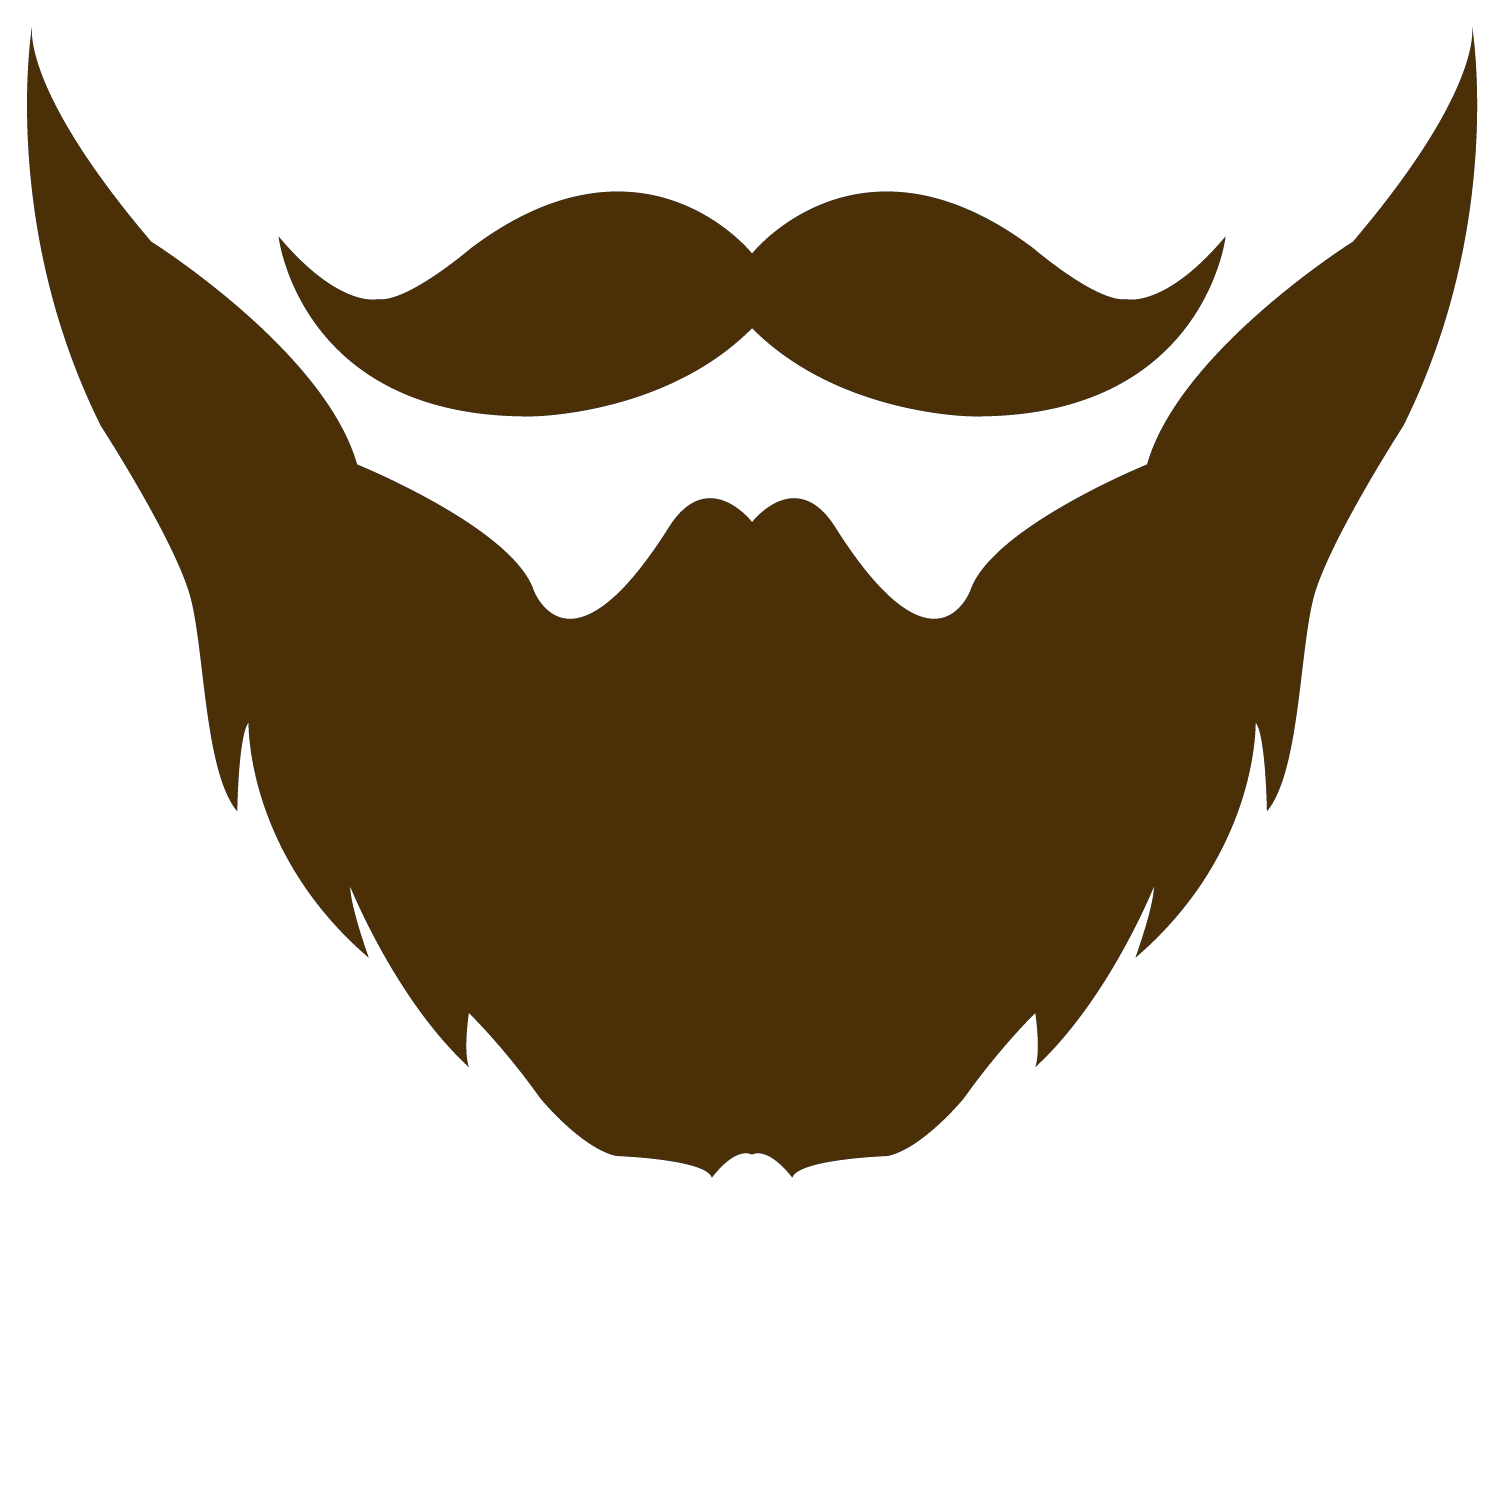 Mustache and goatee png. Collection of free begirded